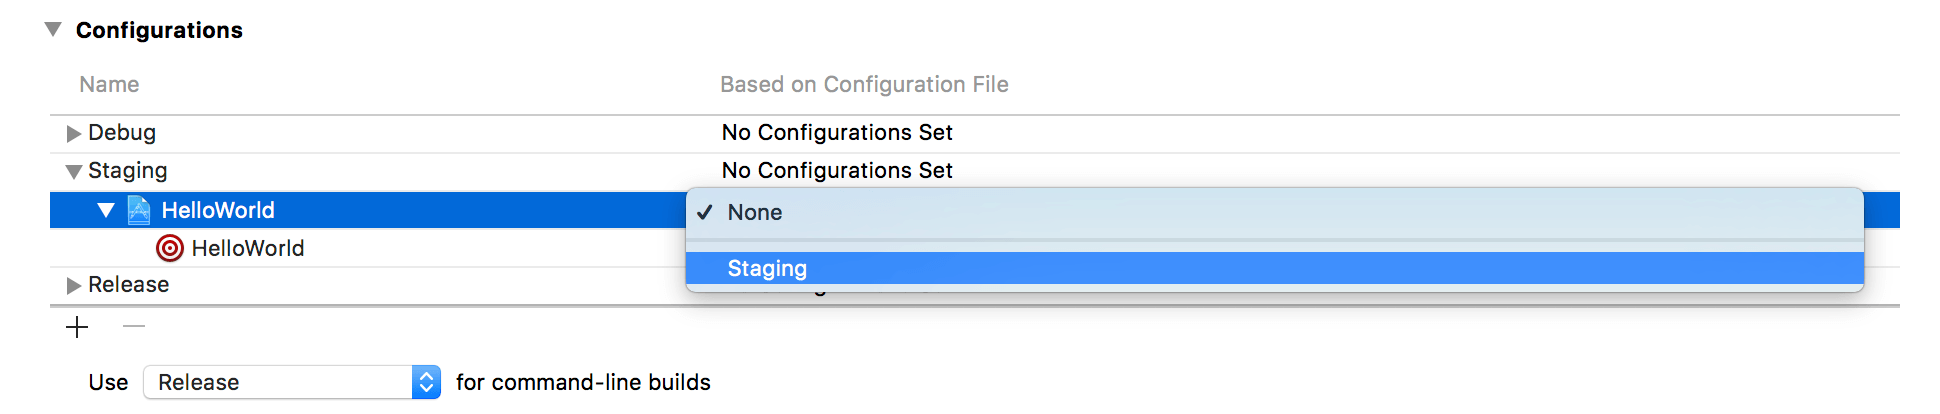 Using Xcode Configuration ( xcconfig) to Manage Different